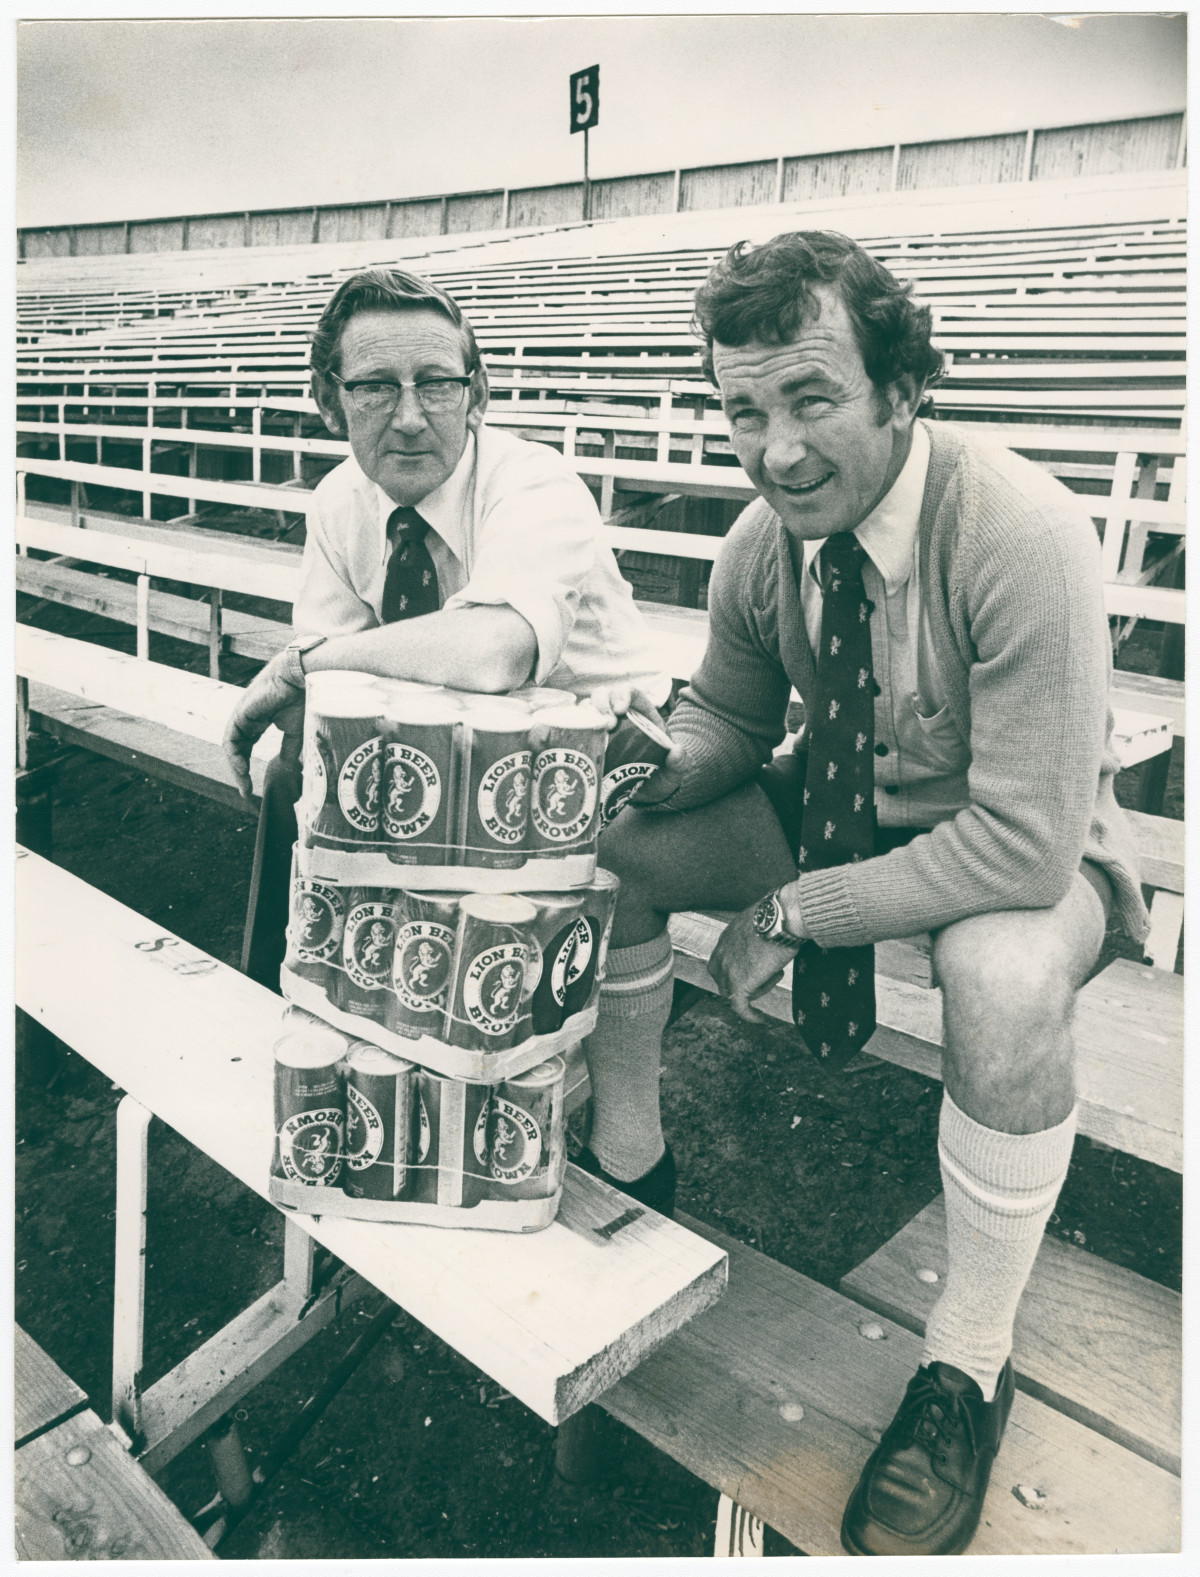 Bill Rees and Paddy Brandon at Lancaster Park no. 5 stadium. 1 February 1979. Christchurch Star archive. In copyright. CCL-StarP-01967A